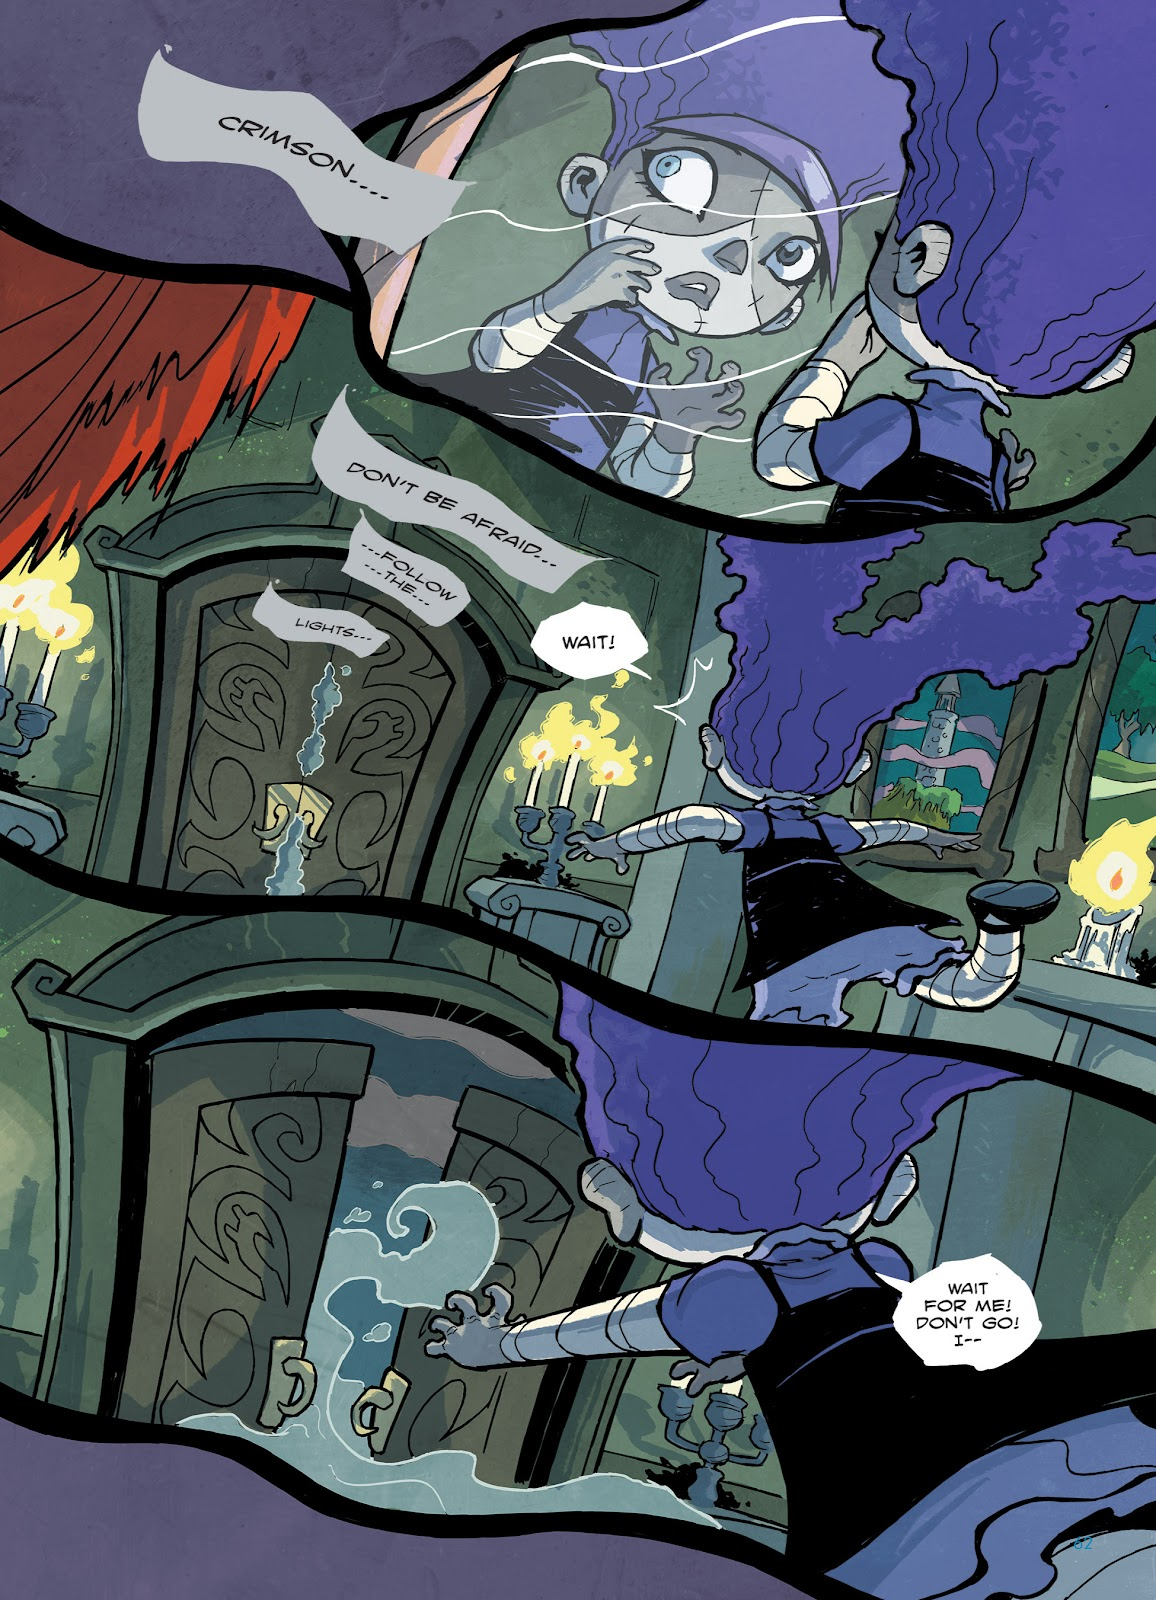 Read online The Smurfs comic -  Issue #23 - 62